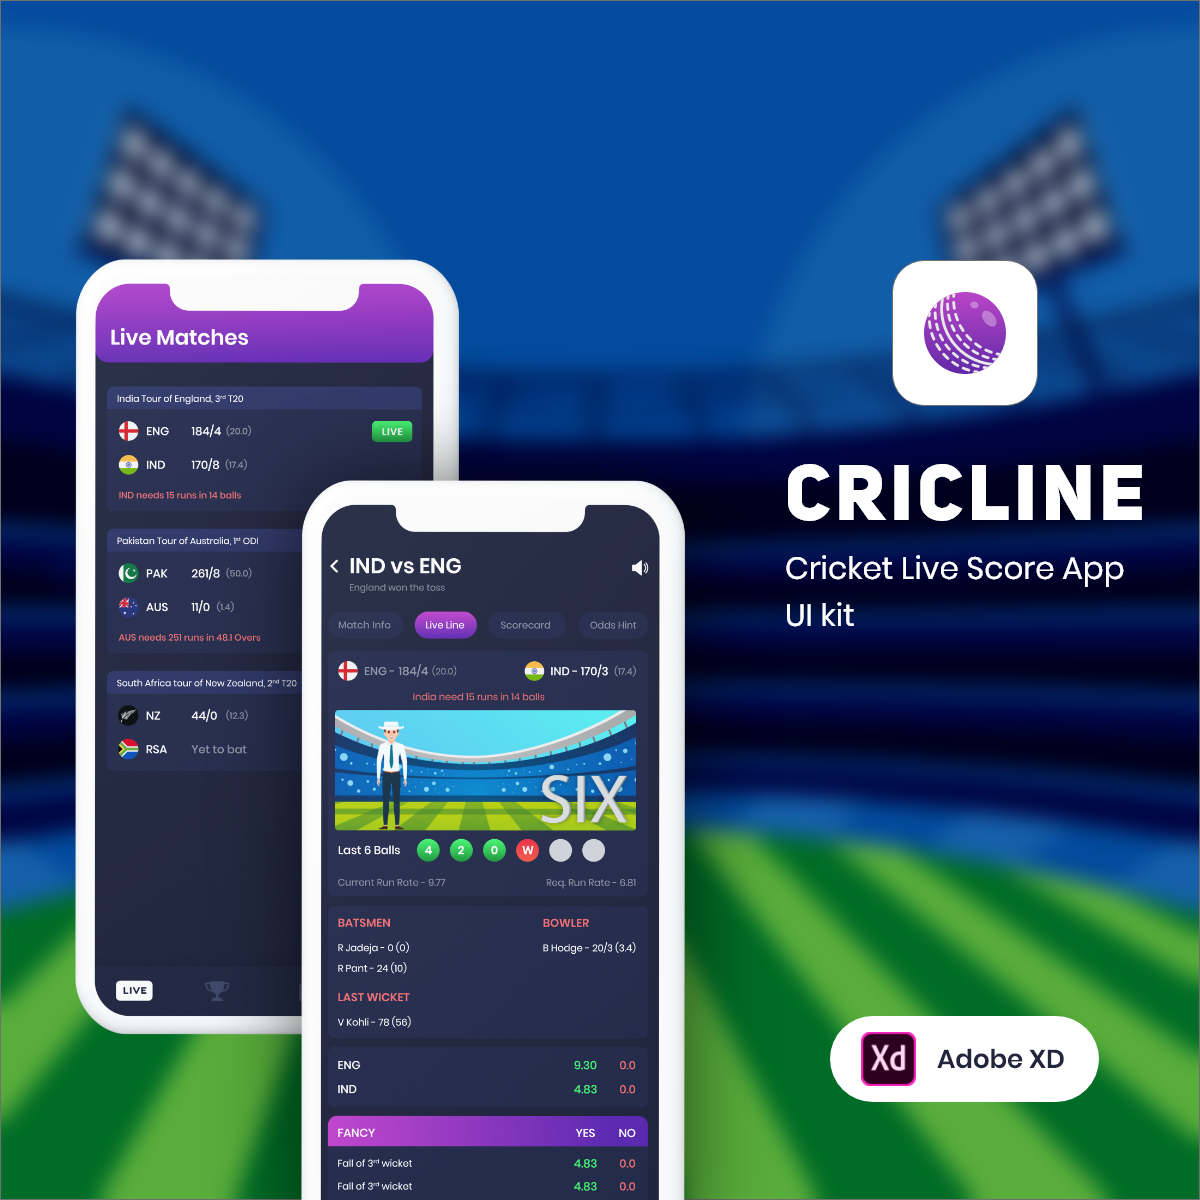 CricLine UI Kit